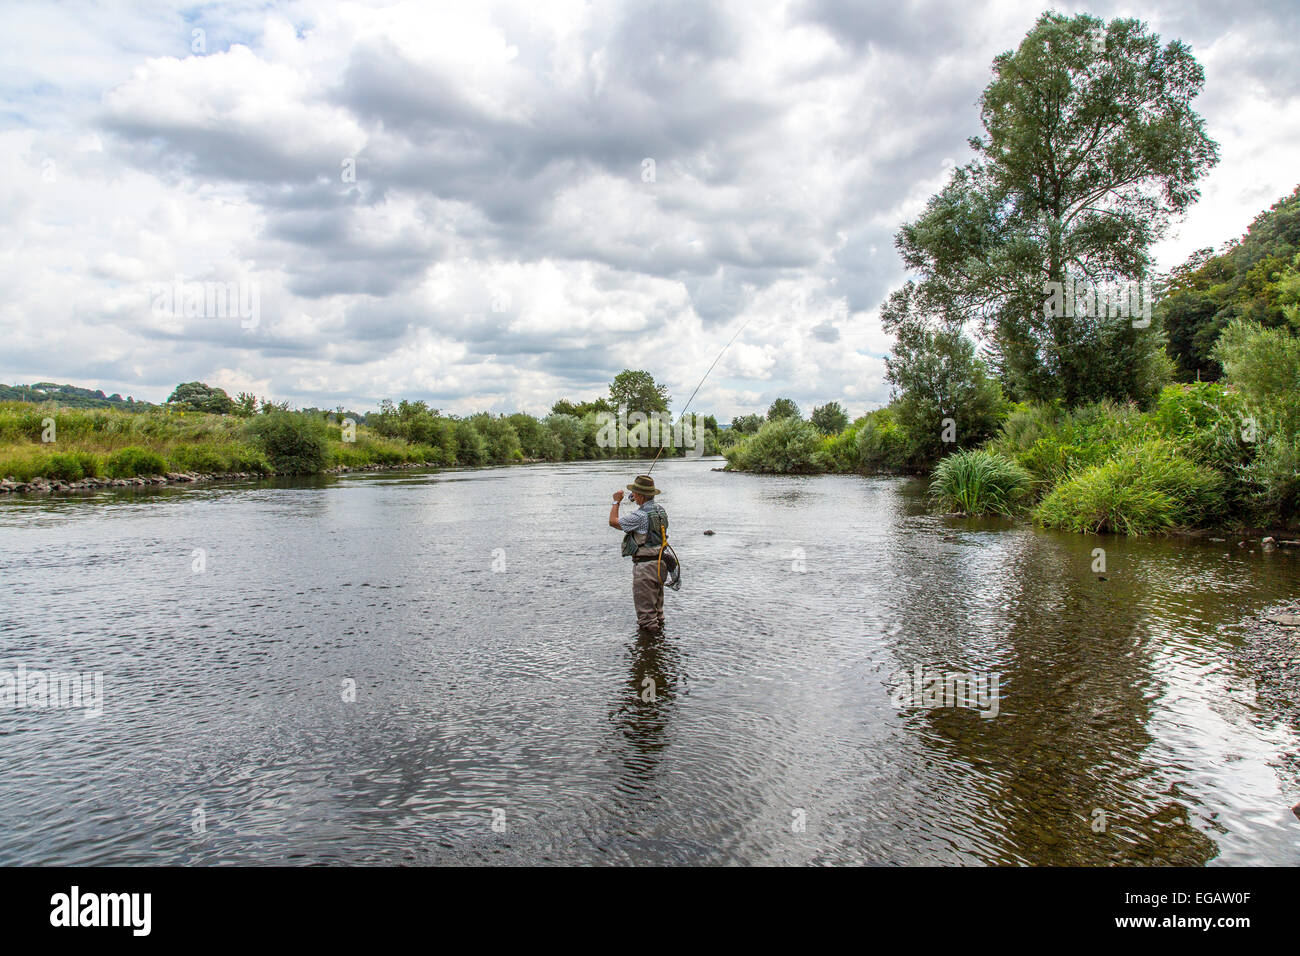 Fly fishing in river Ruhr, Hattingen Germany Stock Photo